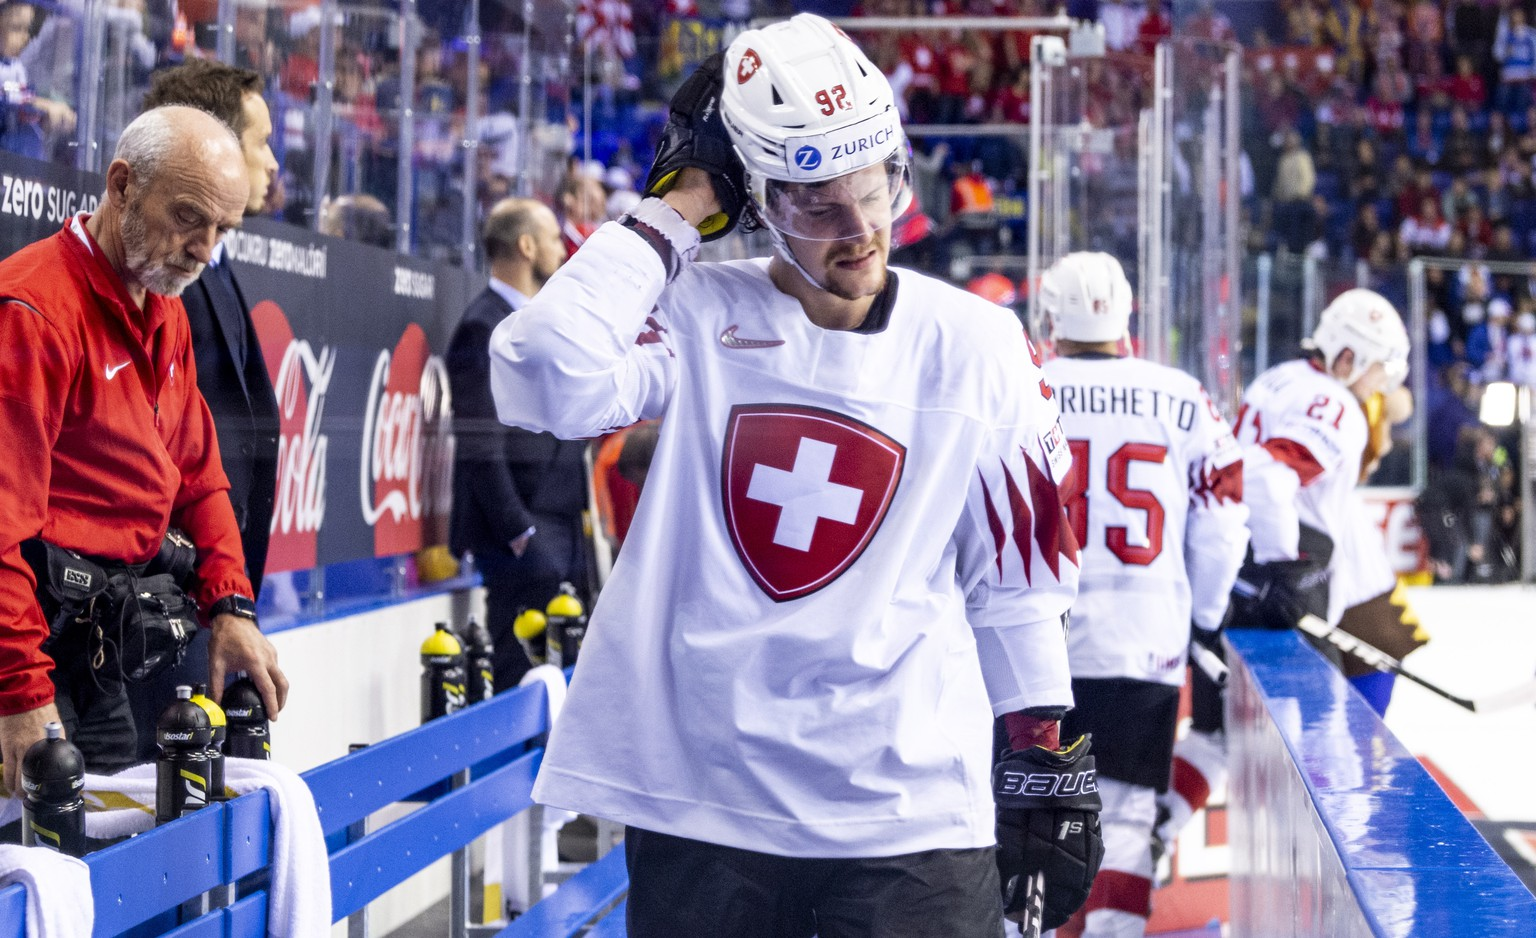 epa07595035 Switzerland's Gaetan Haas reacts after losing the IIHF World Championship quarter final ice hockey match between Canada and Switzerland at the Steel Arena in Kosice, Slovakia, 23 May 2019.  EPA/MELANIE DUCHENE